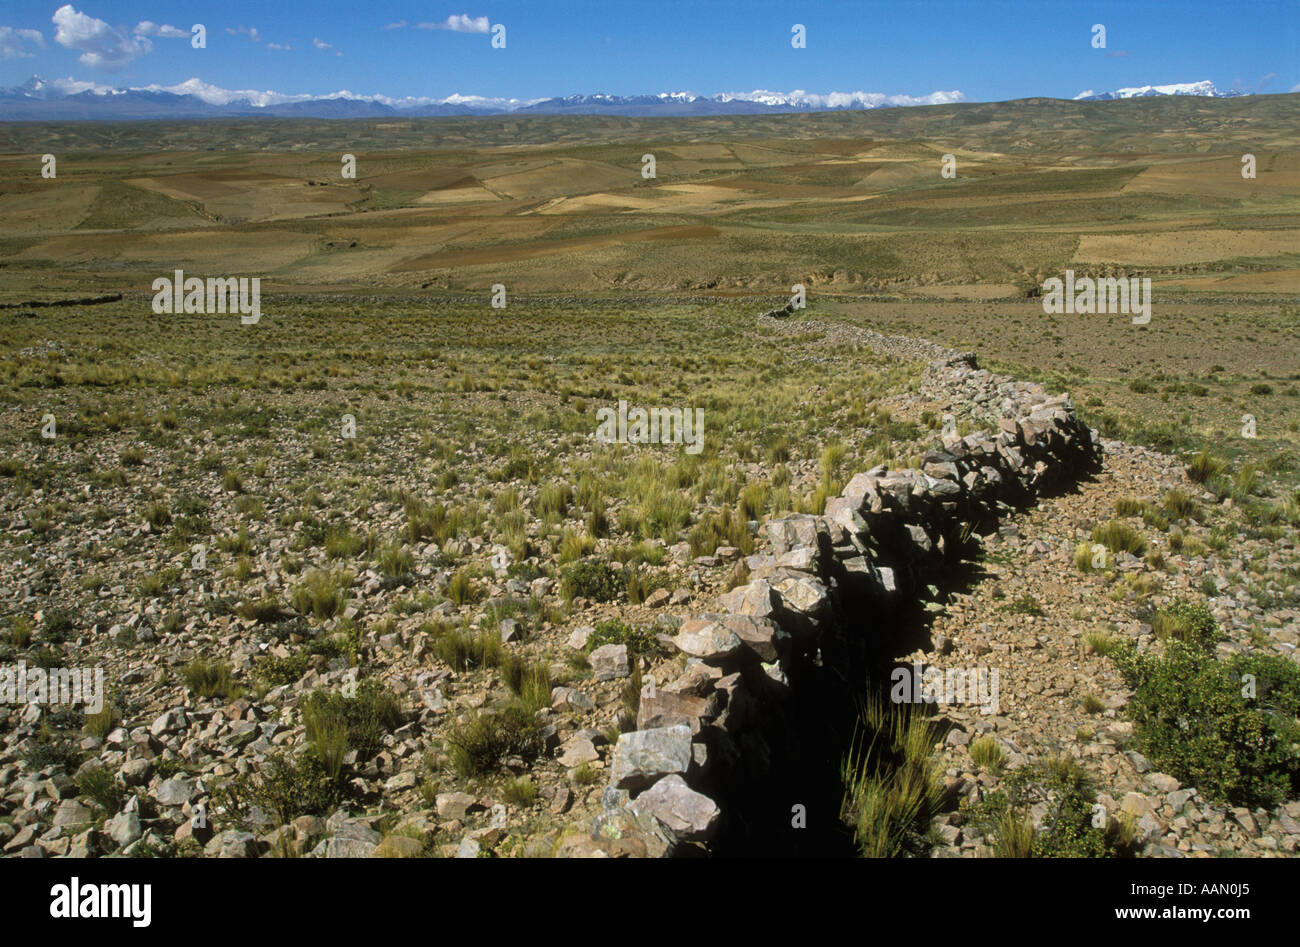 A stone fence stretches across the fields of the  Altiplano Bolivia - Stock Image